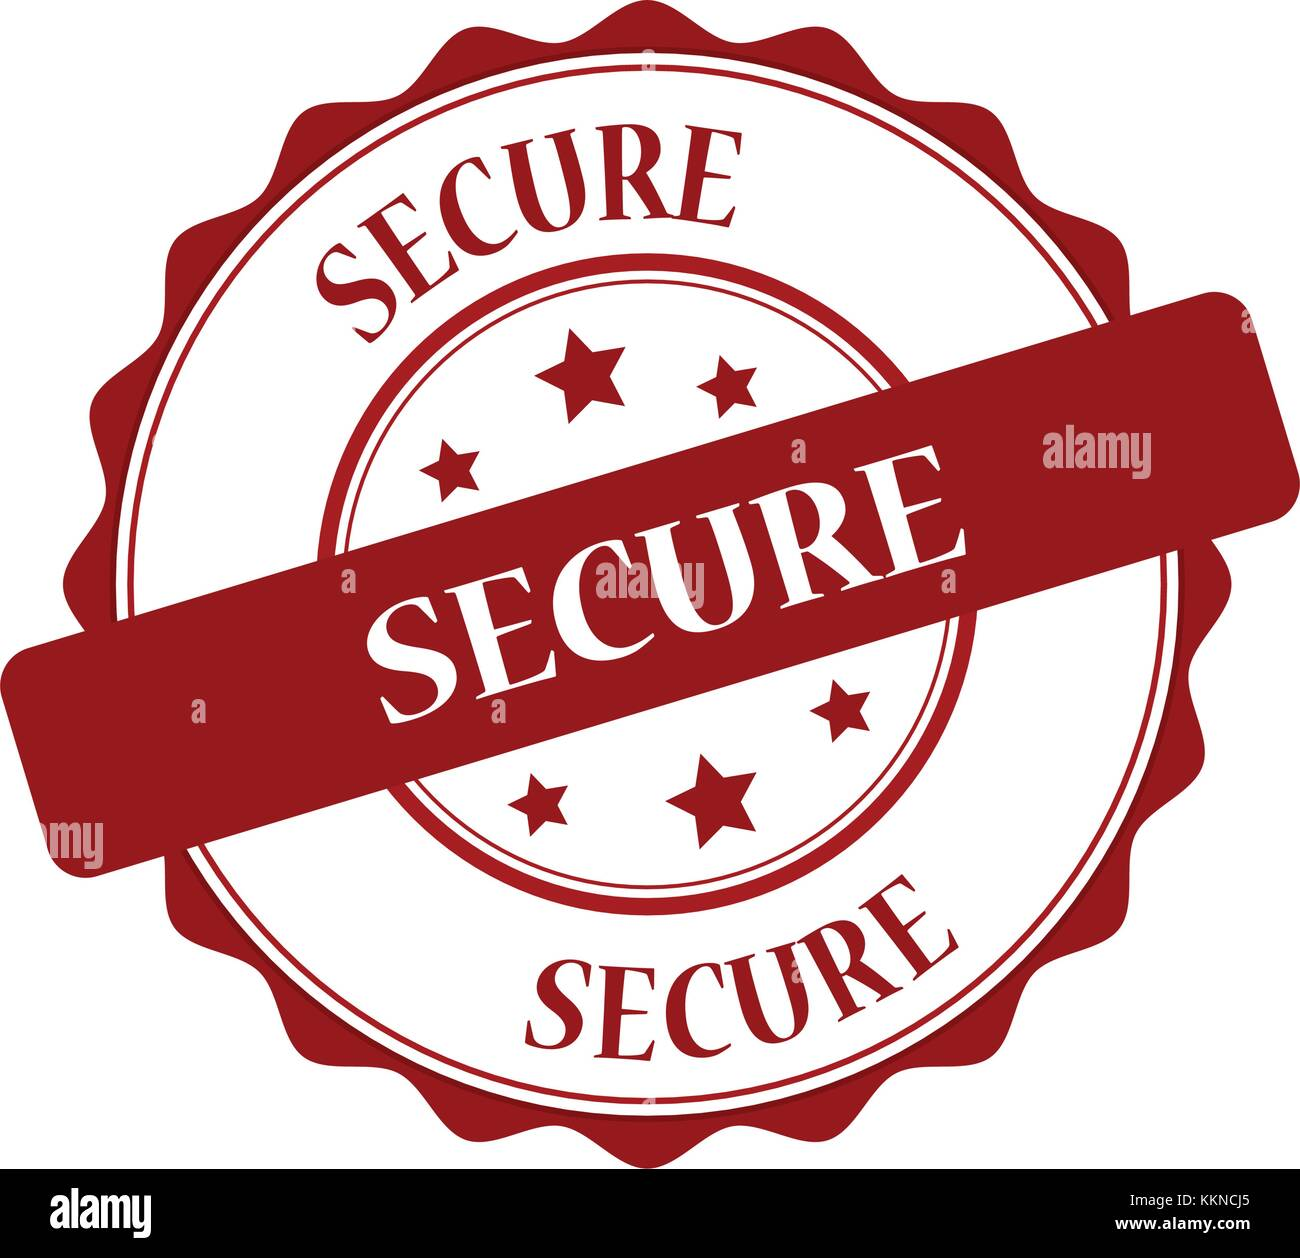 Secure stamp illustration - Stock Image